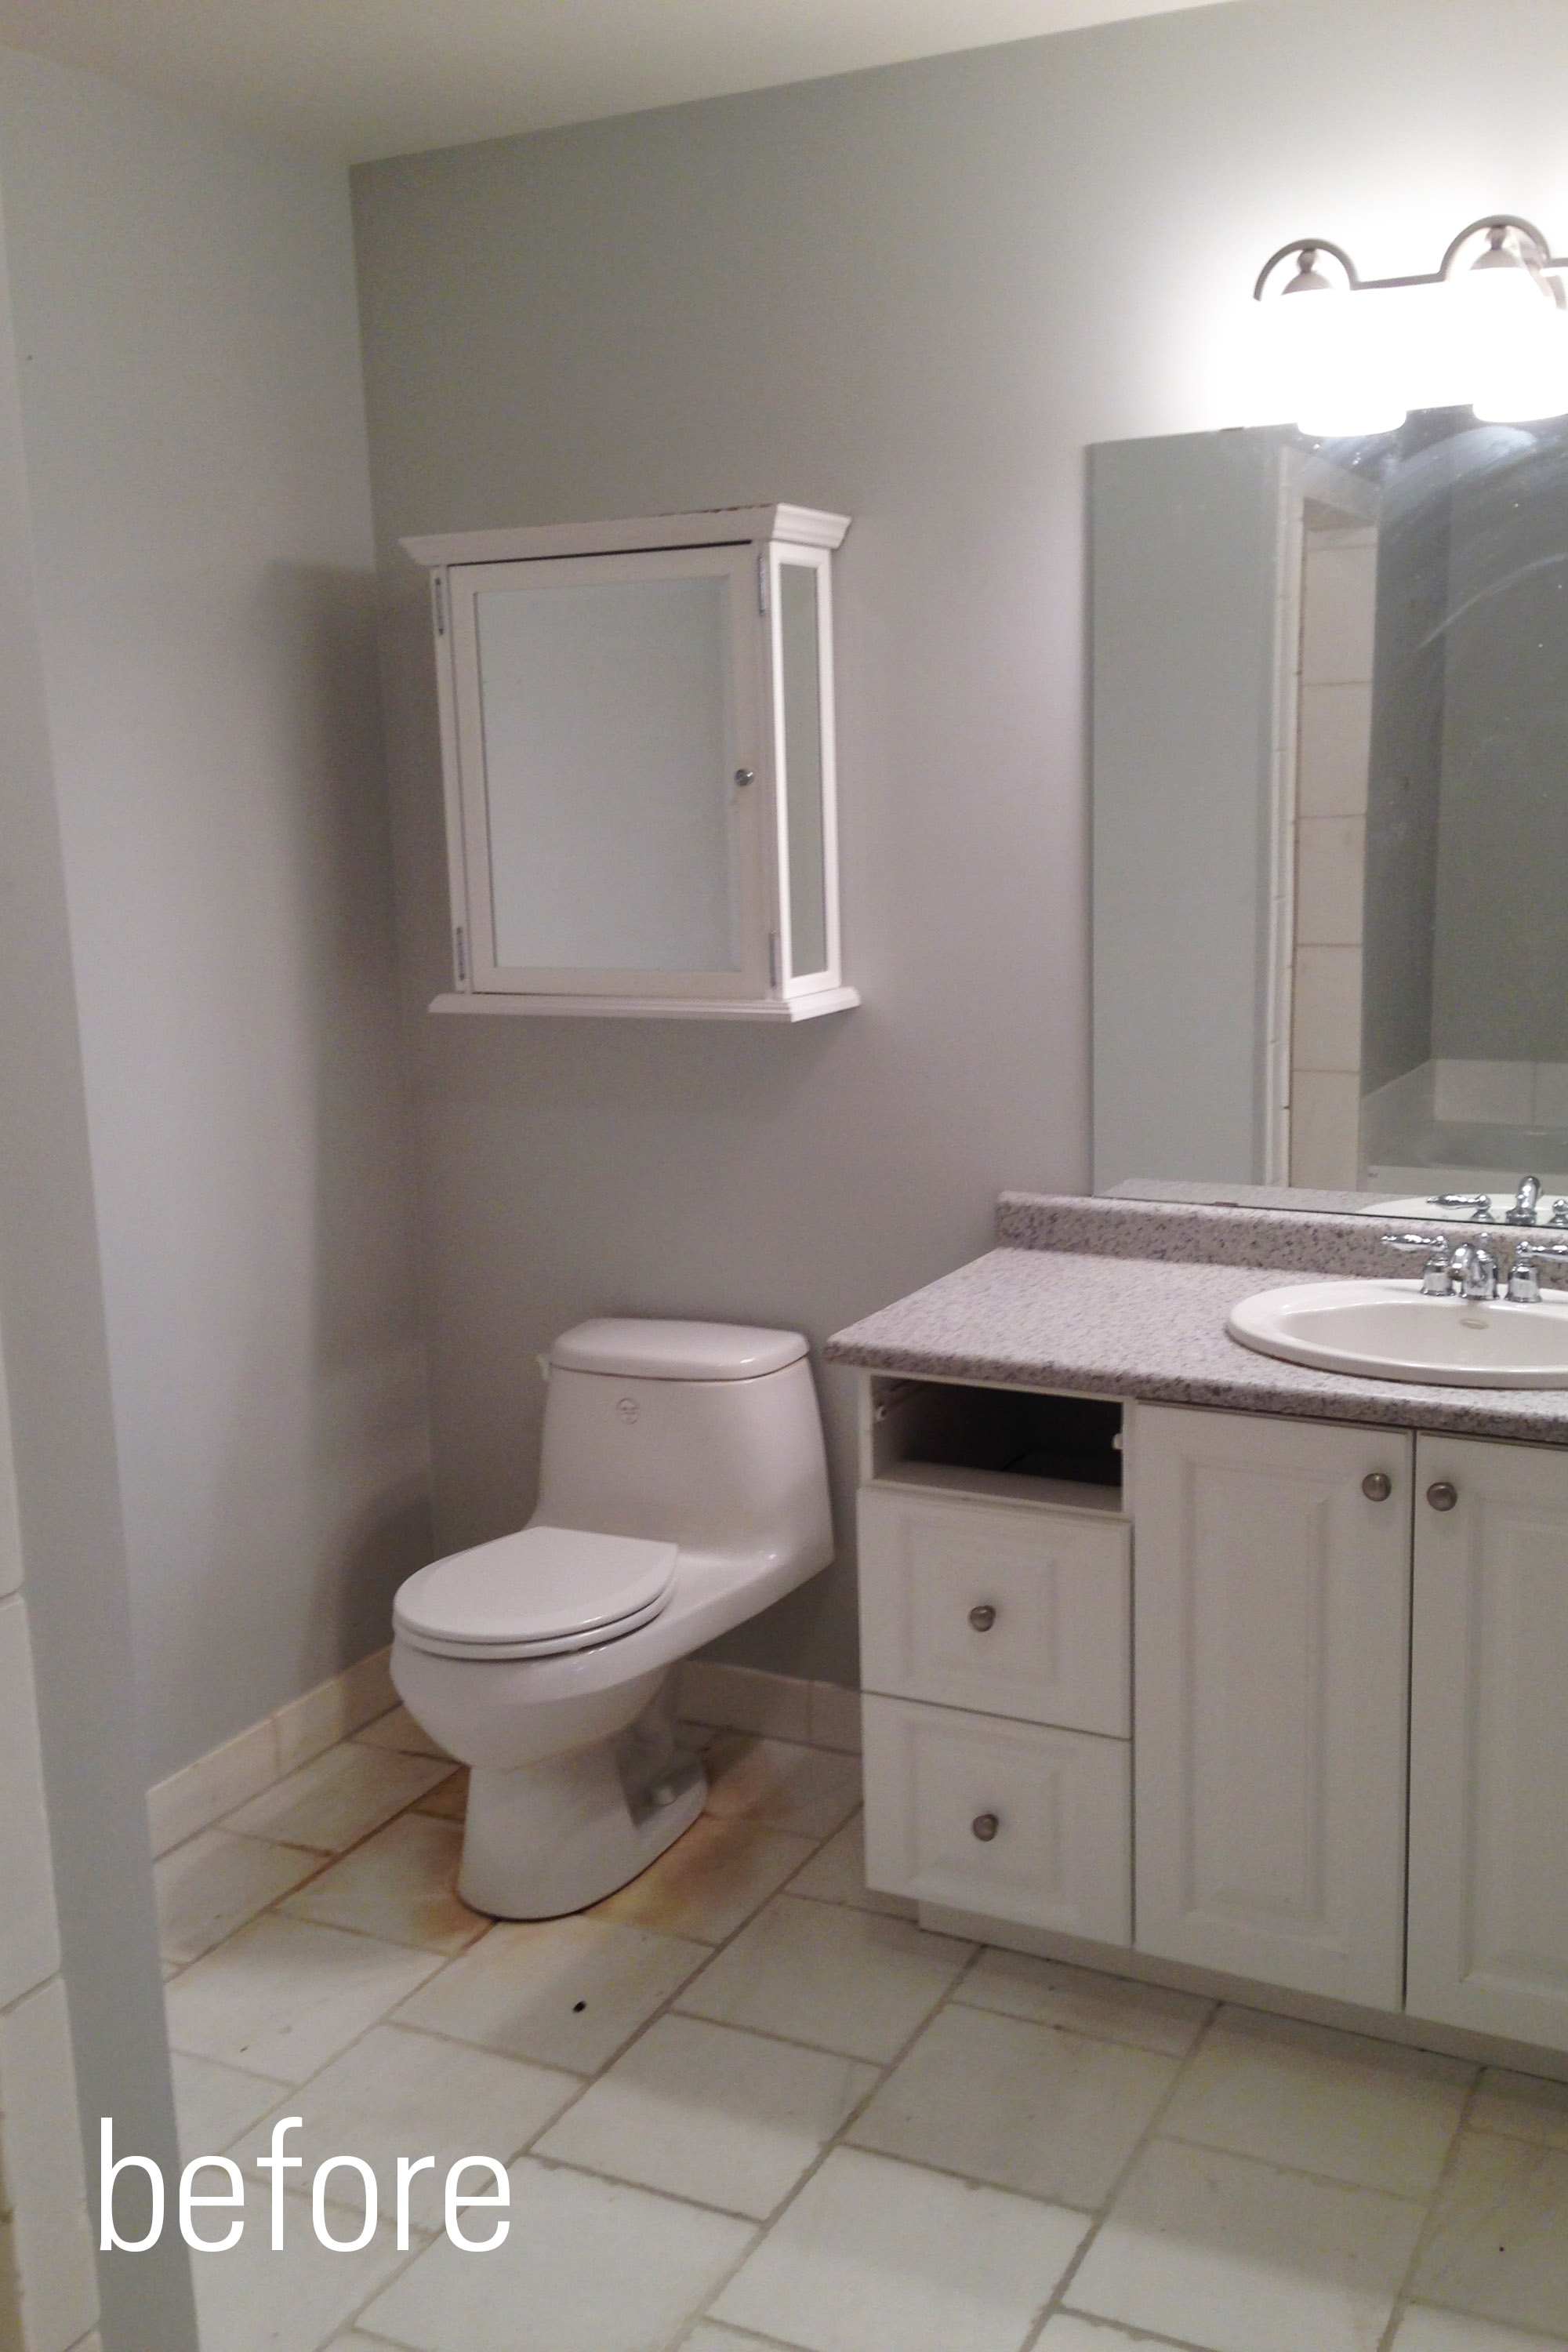 Waterfront rental unit bath design construction of for Updating a bathroom